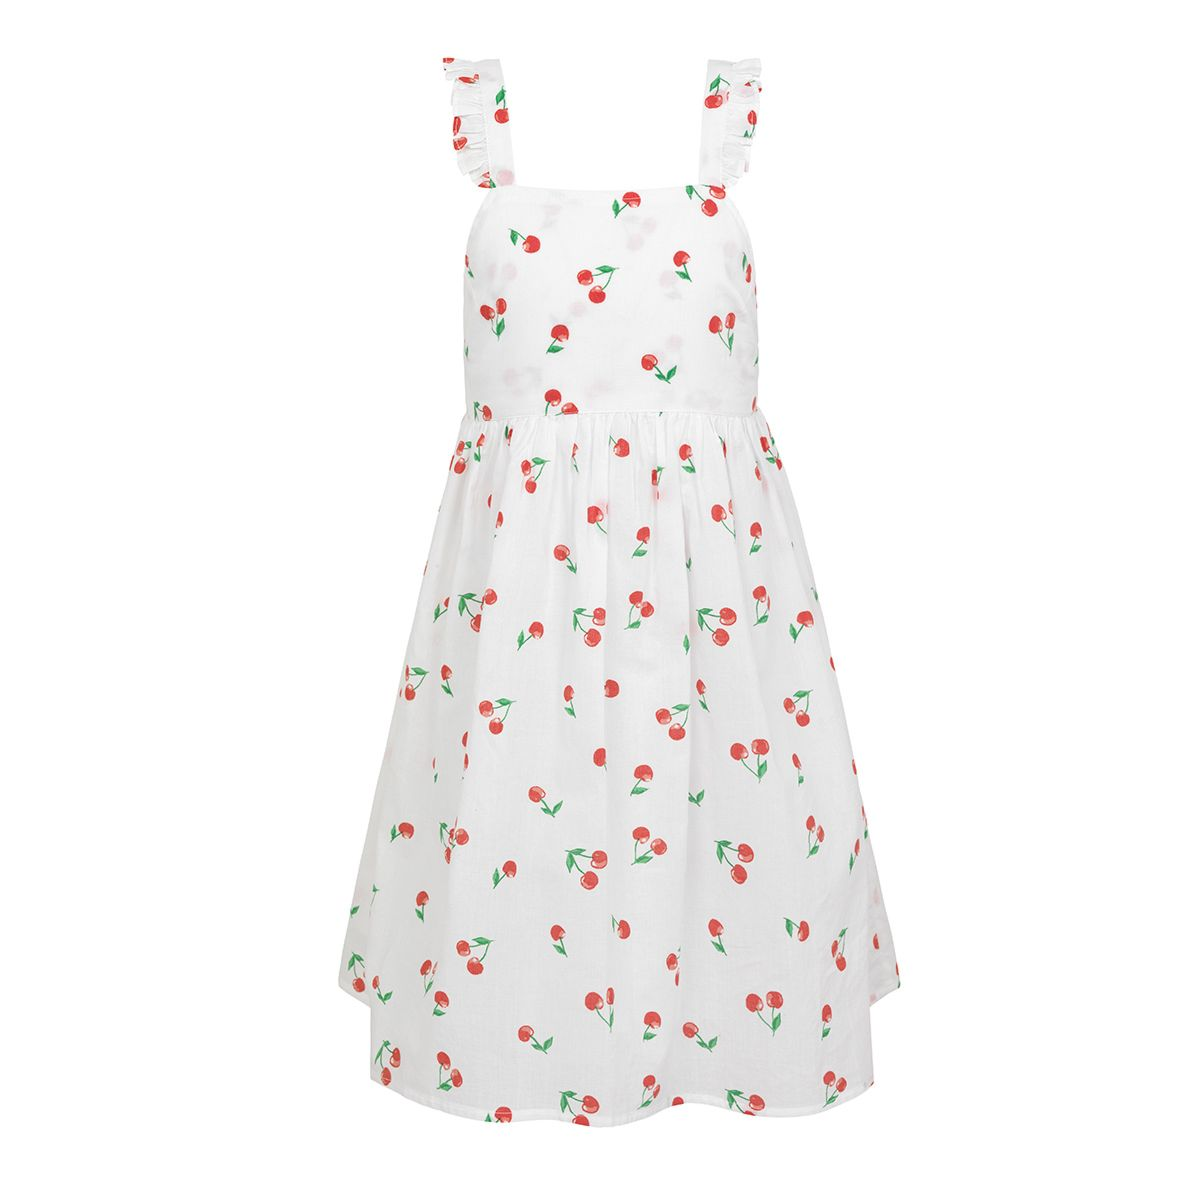 Sunuva Girls Cherries Dress